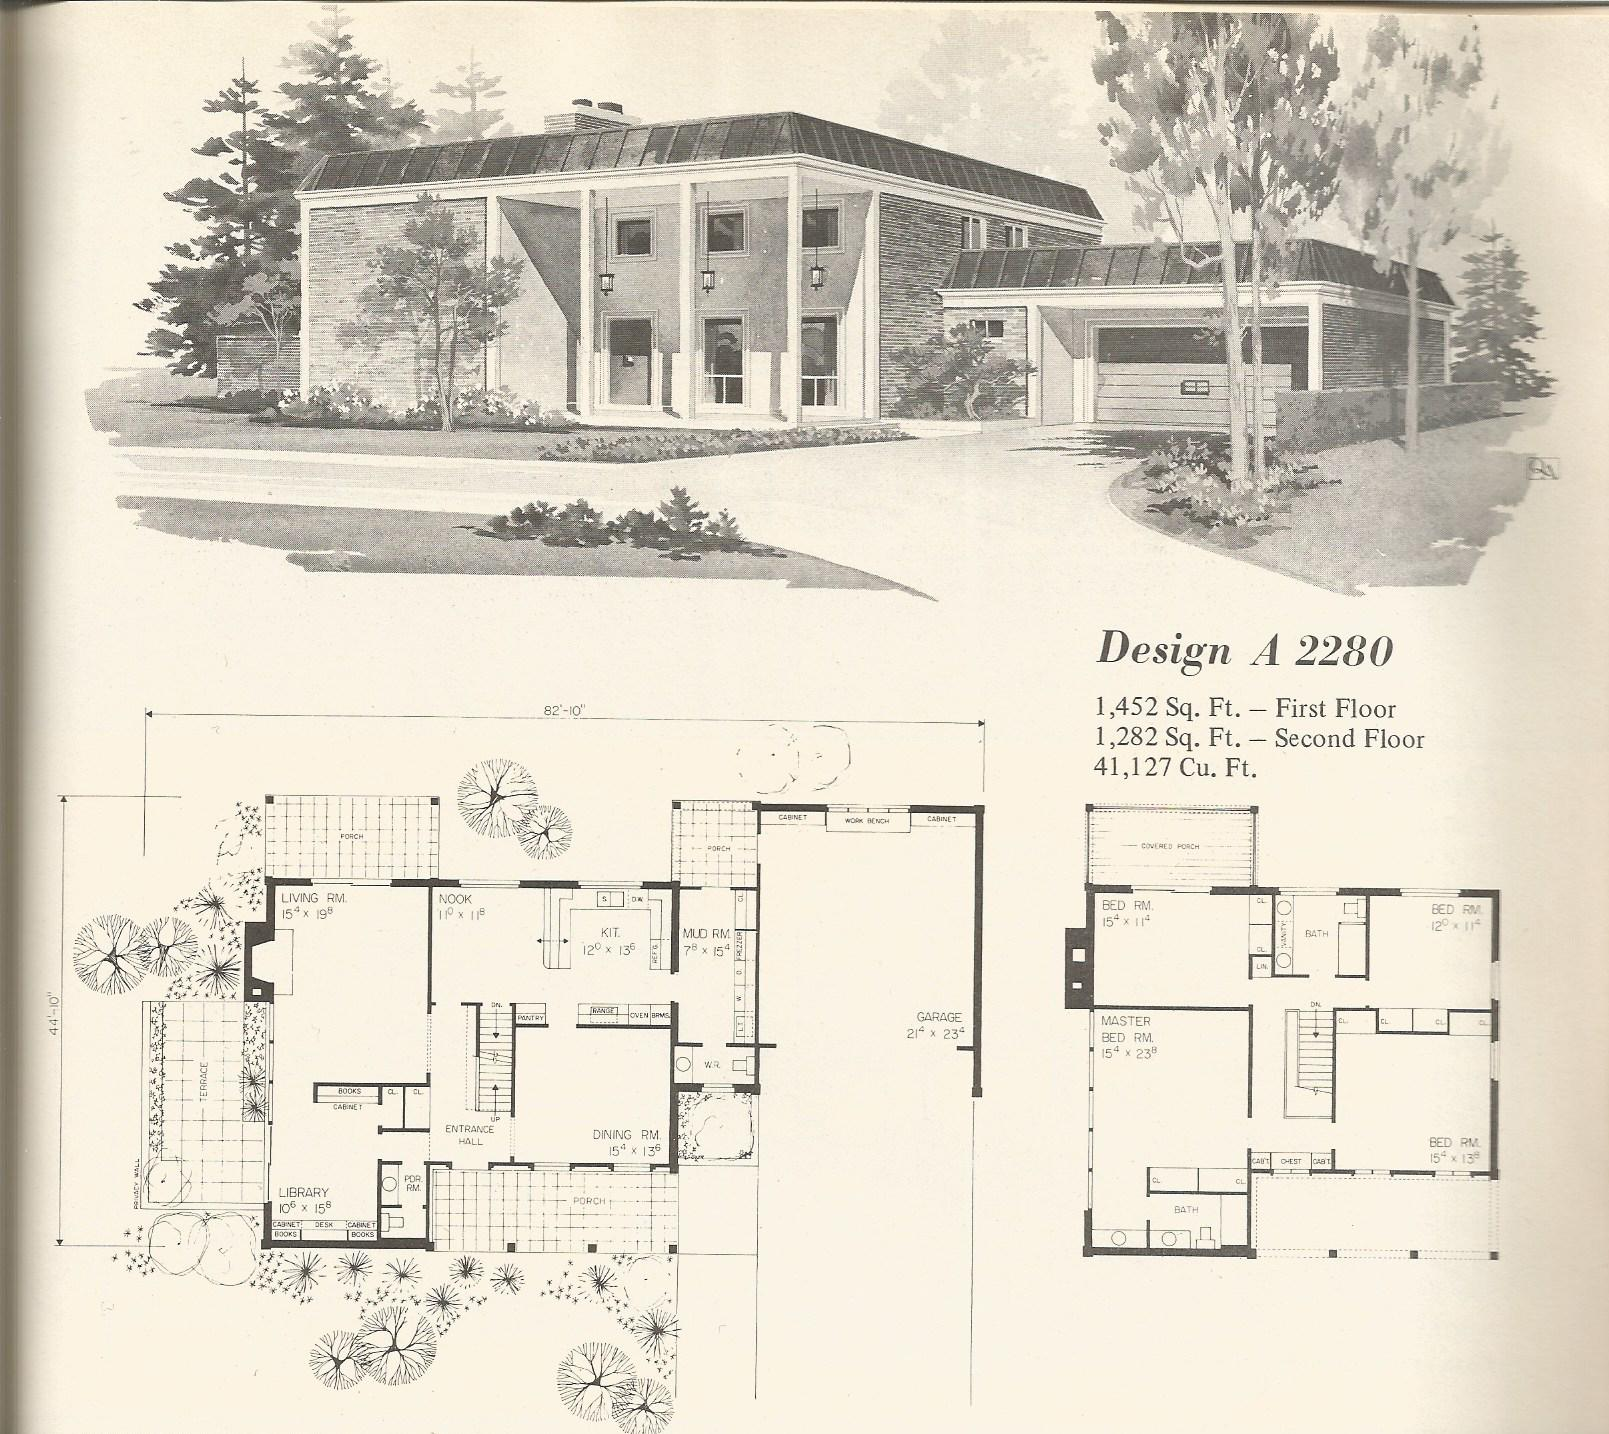 Vintage house plans 2280 antique alter ego for Vintage home plans